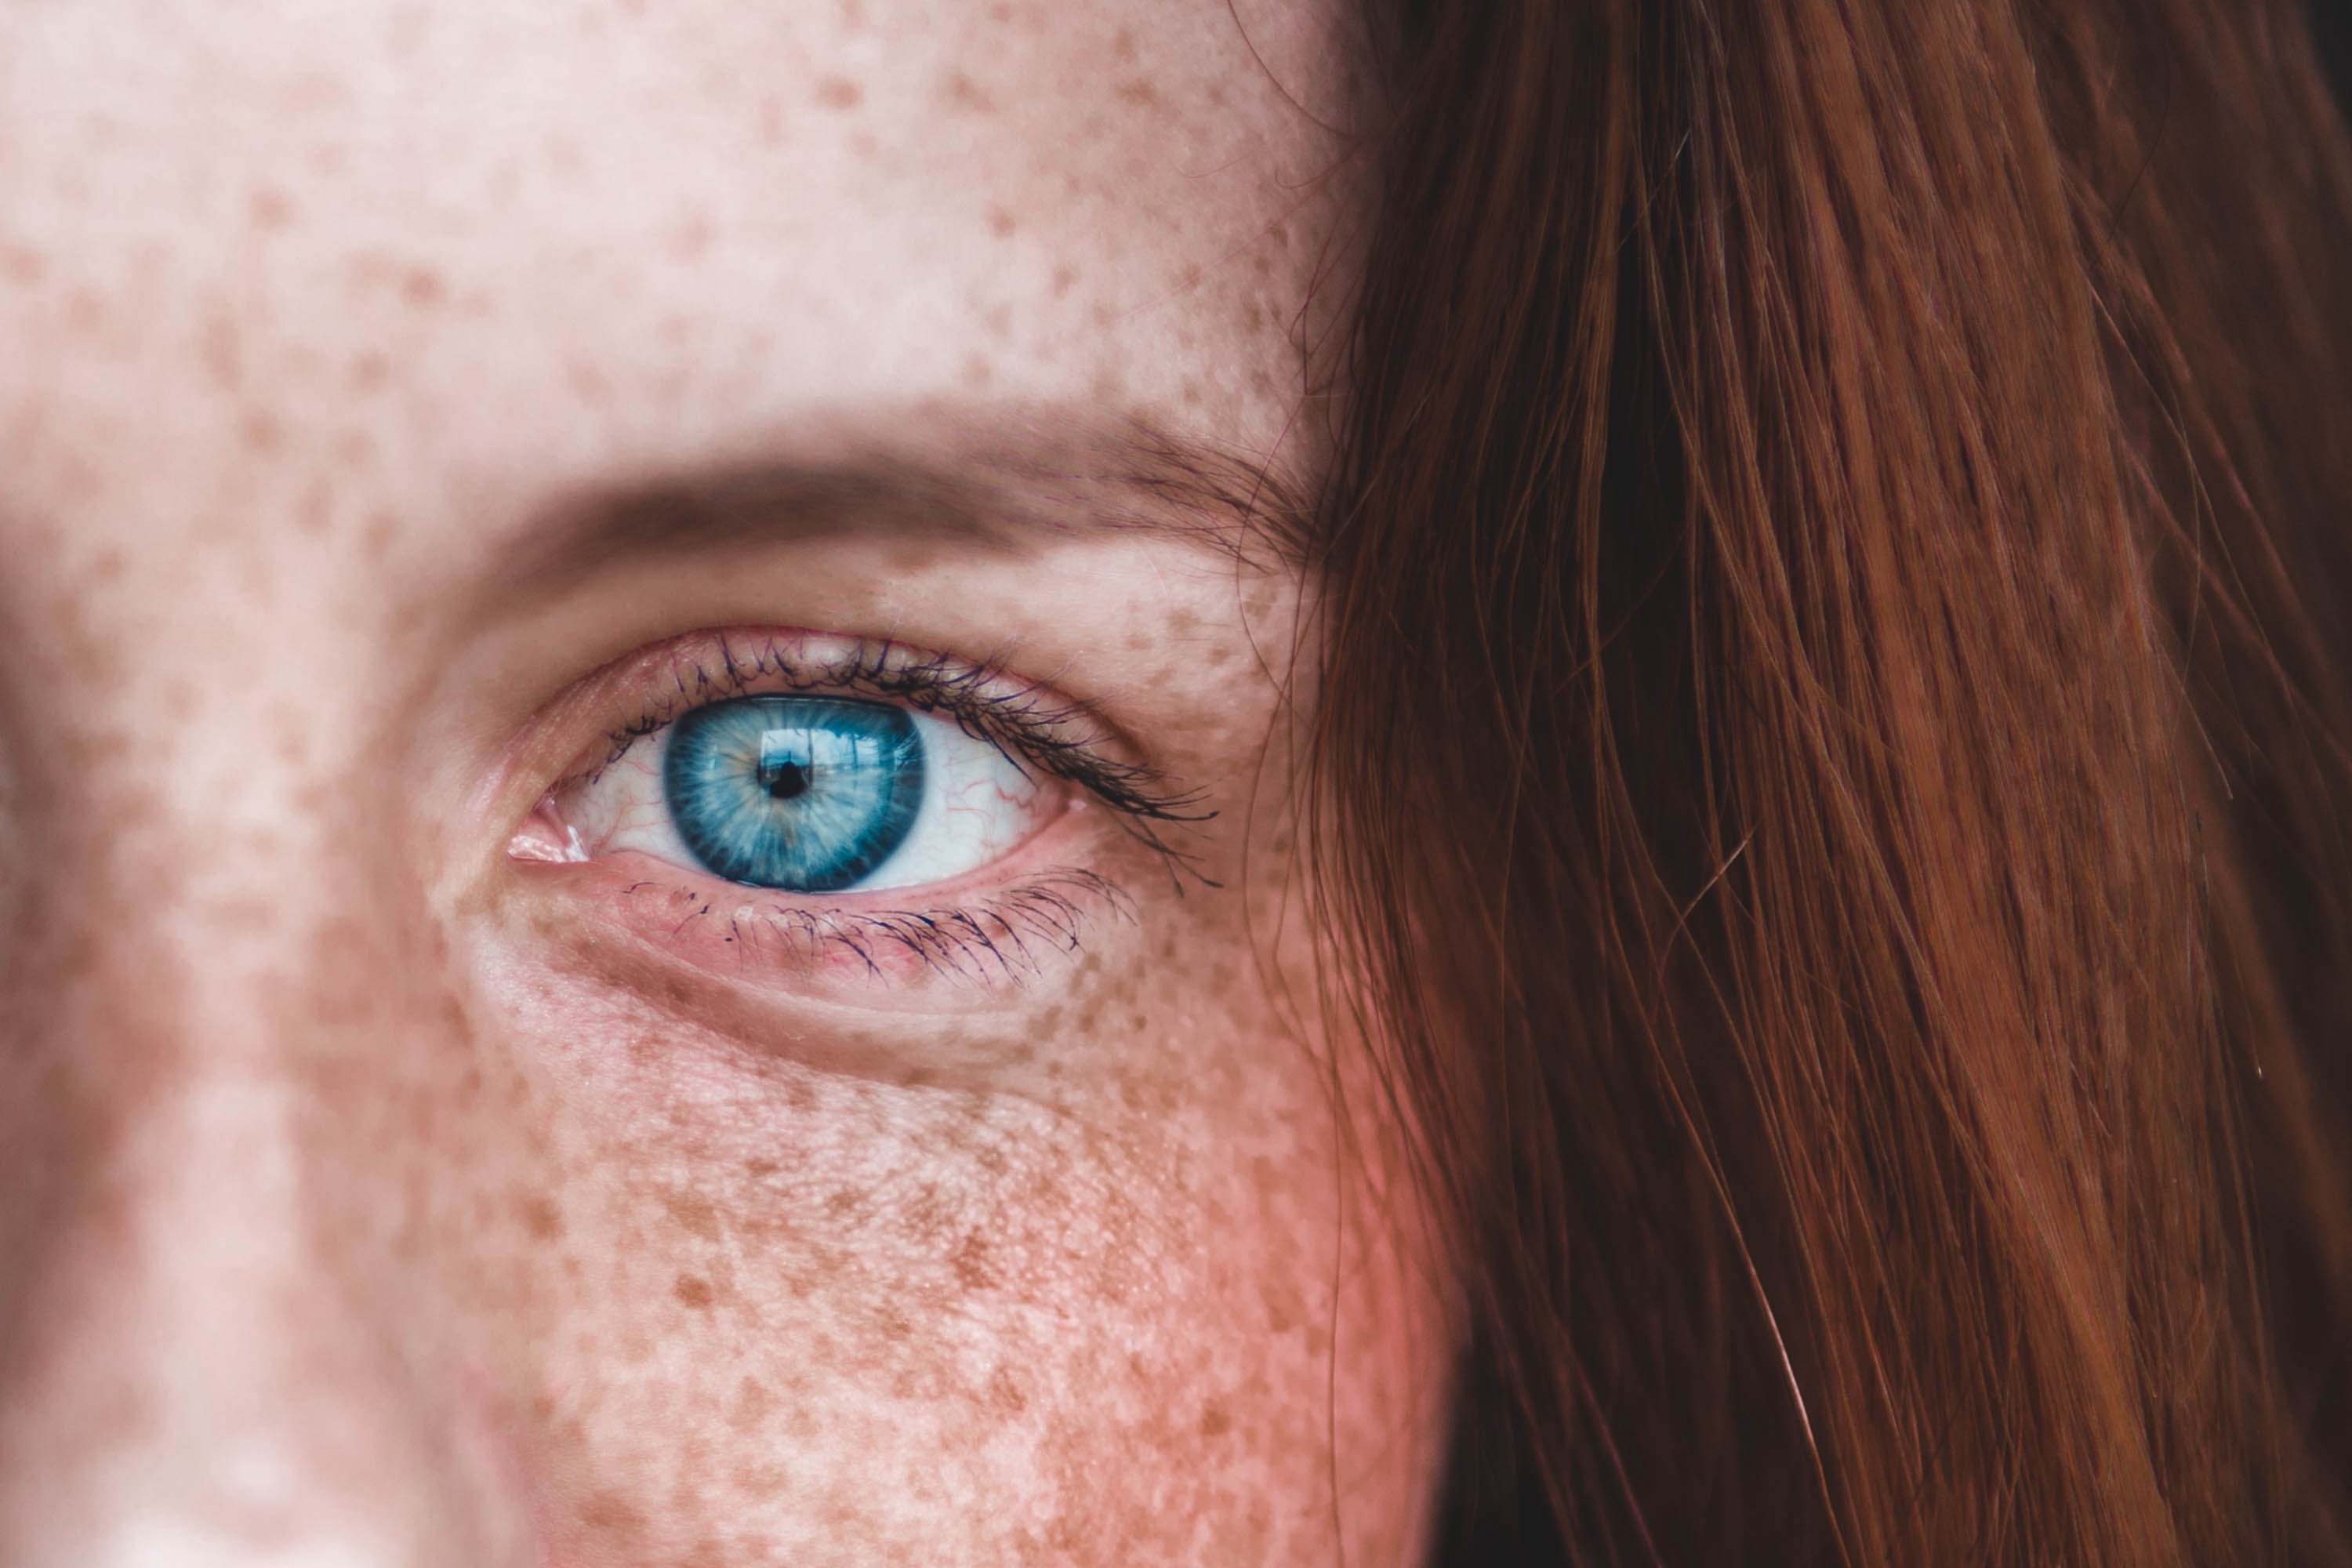 My Blue Eyes Couldn't See That I Was A Well-Meaning White Woman   by  Lyndsay Landrey   An Injustice!   Medium